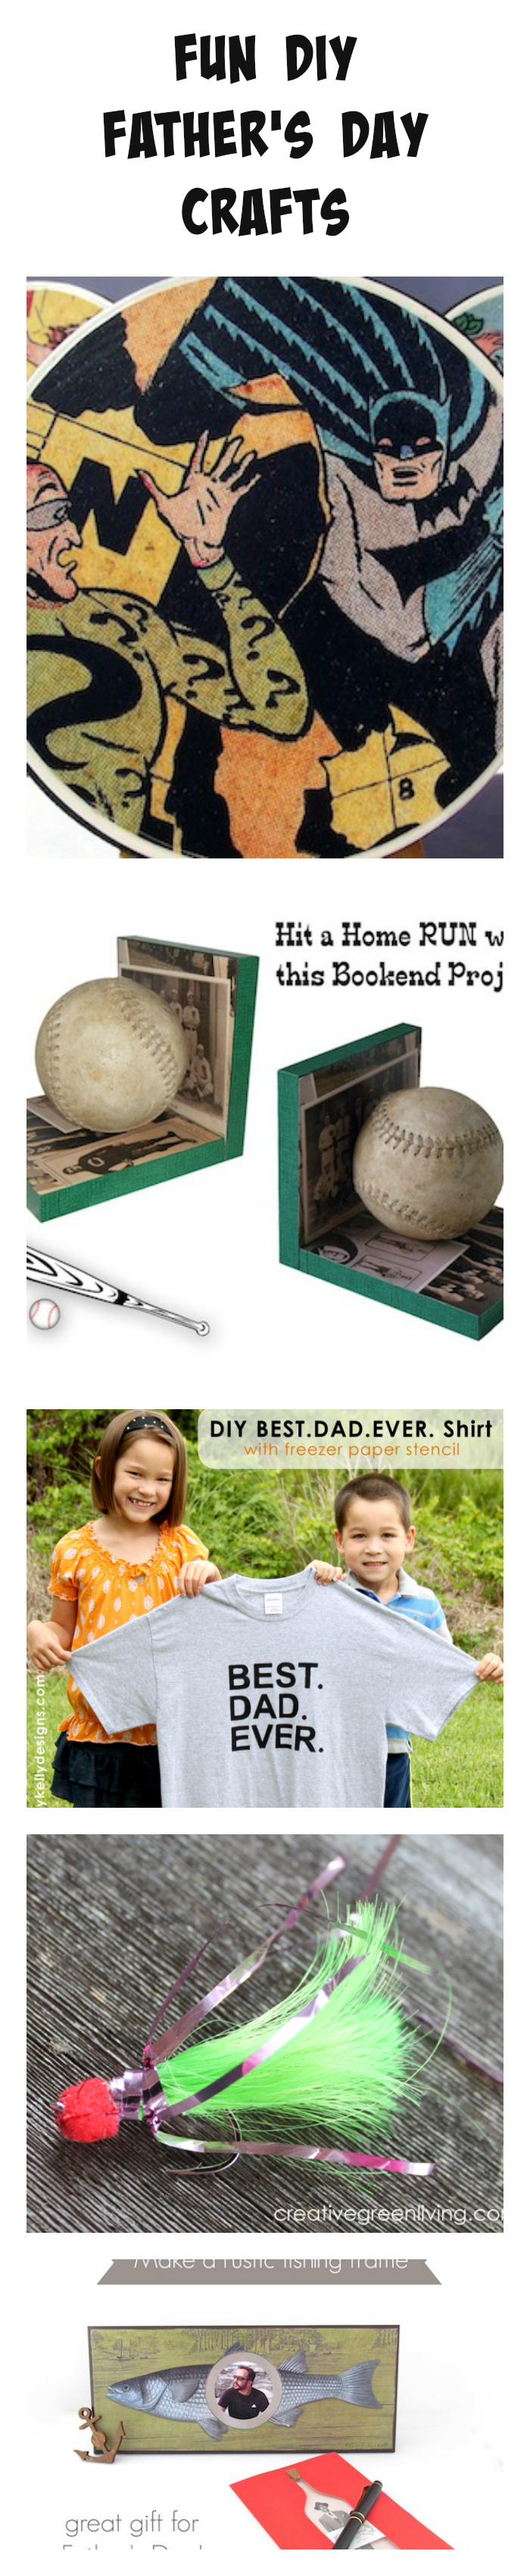 Fun DIY Father's Day Crafts